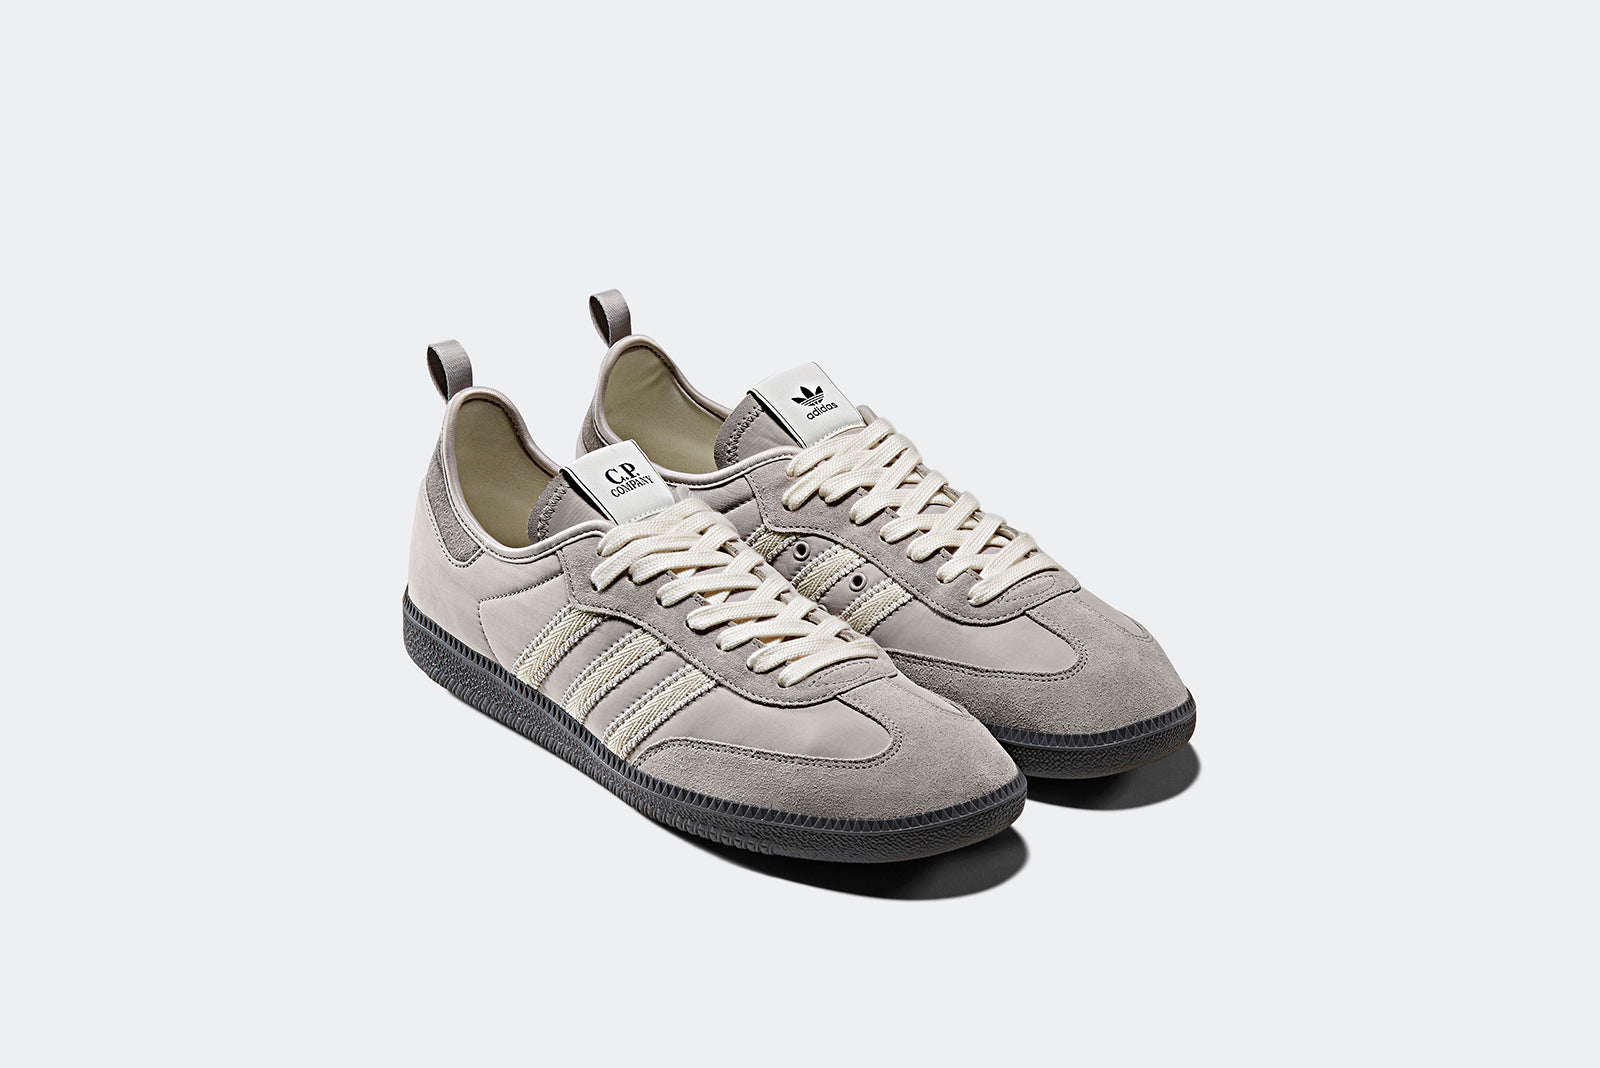 07d921b56bd79c adidas Samba x C.P. Company F33870 Clear Granite Off White Off White Price   £109.00. Online Launch  Thursday 23rd of August 23 00BST